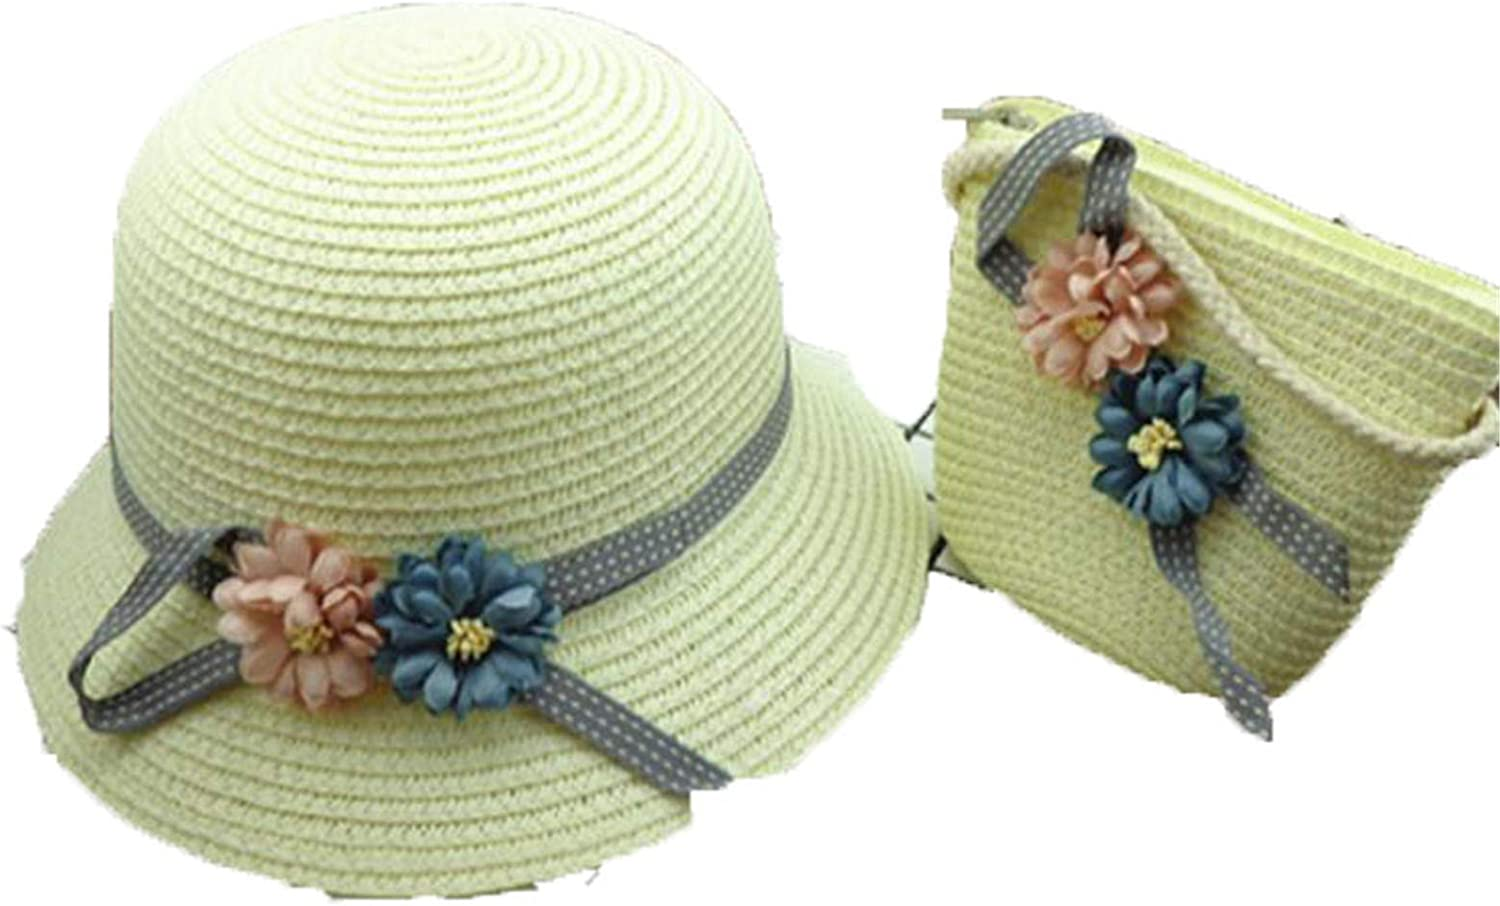 Boy Girls Straw Hats Flowers Summer Sun Hats for Kids Children Beach Hats Foldable Sunscreen Including Bag White 1 3 to 8 Years Old